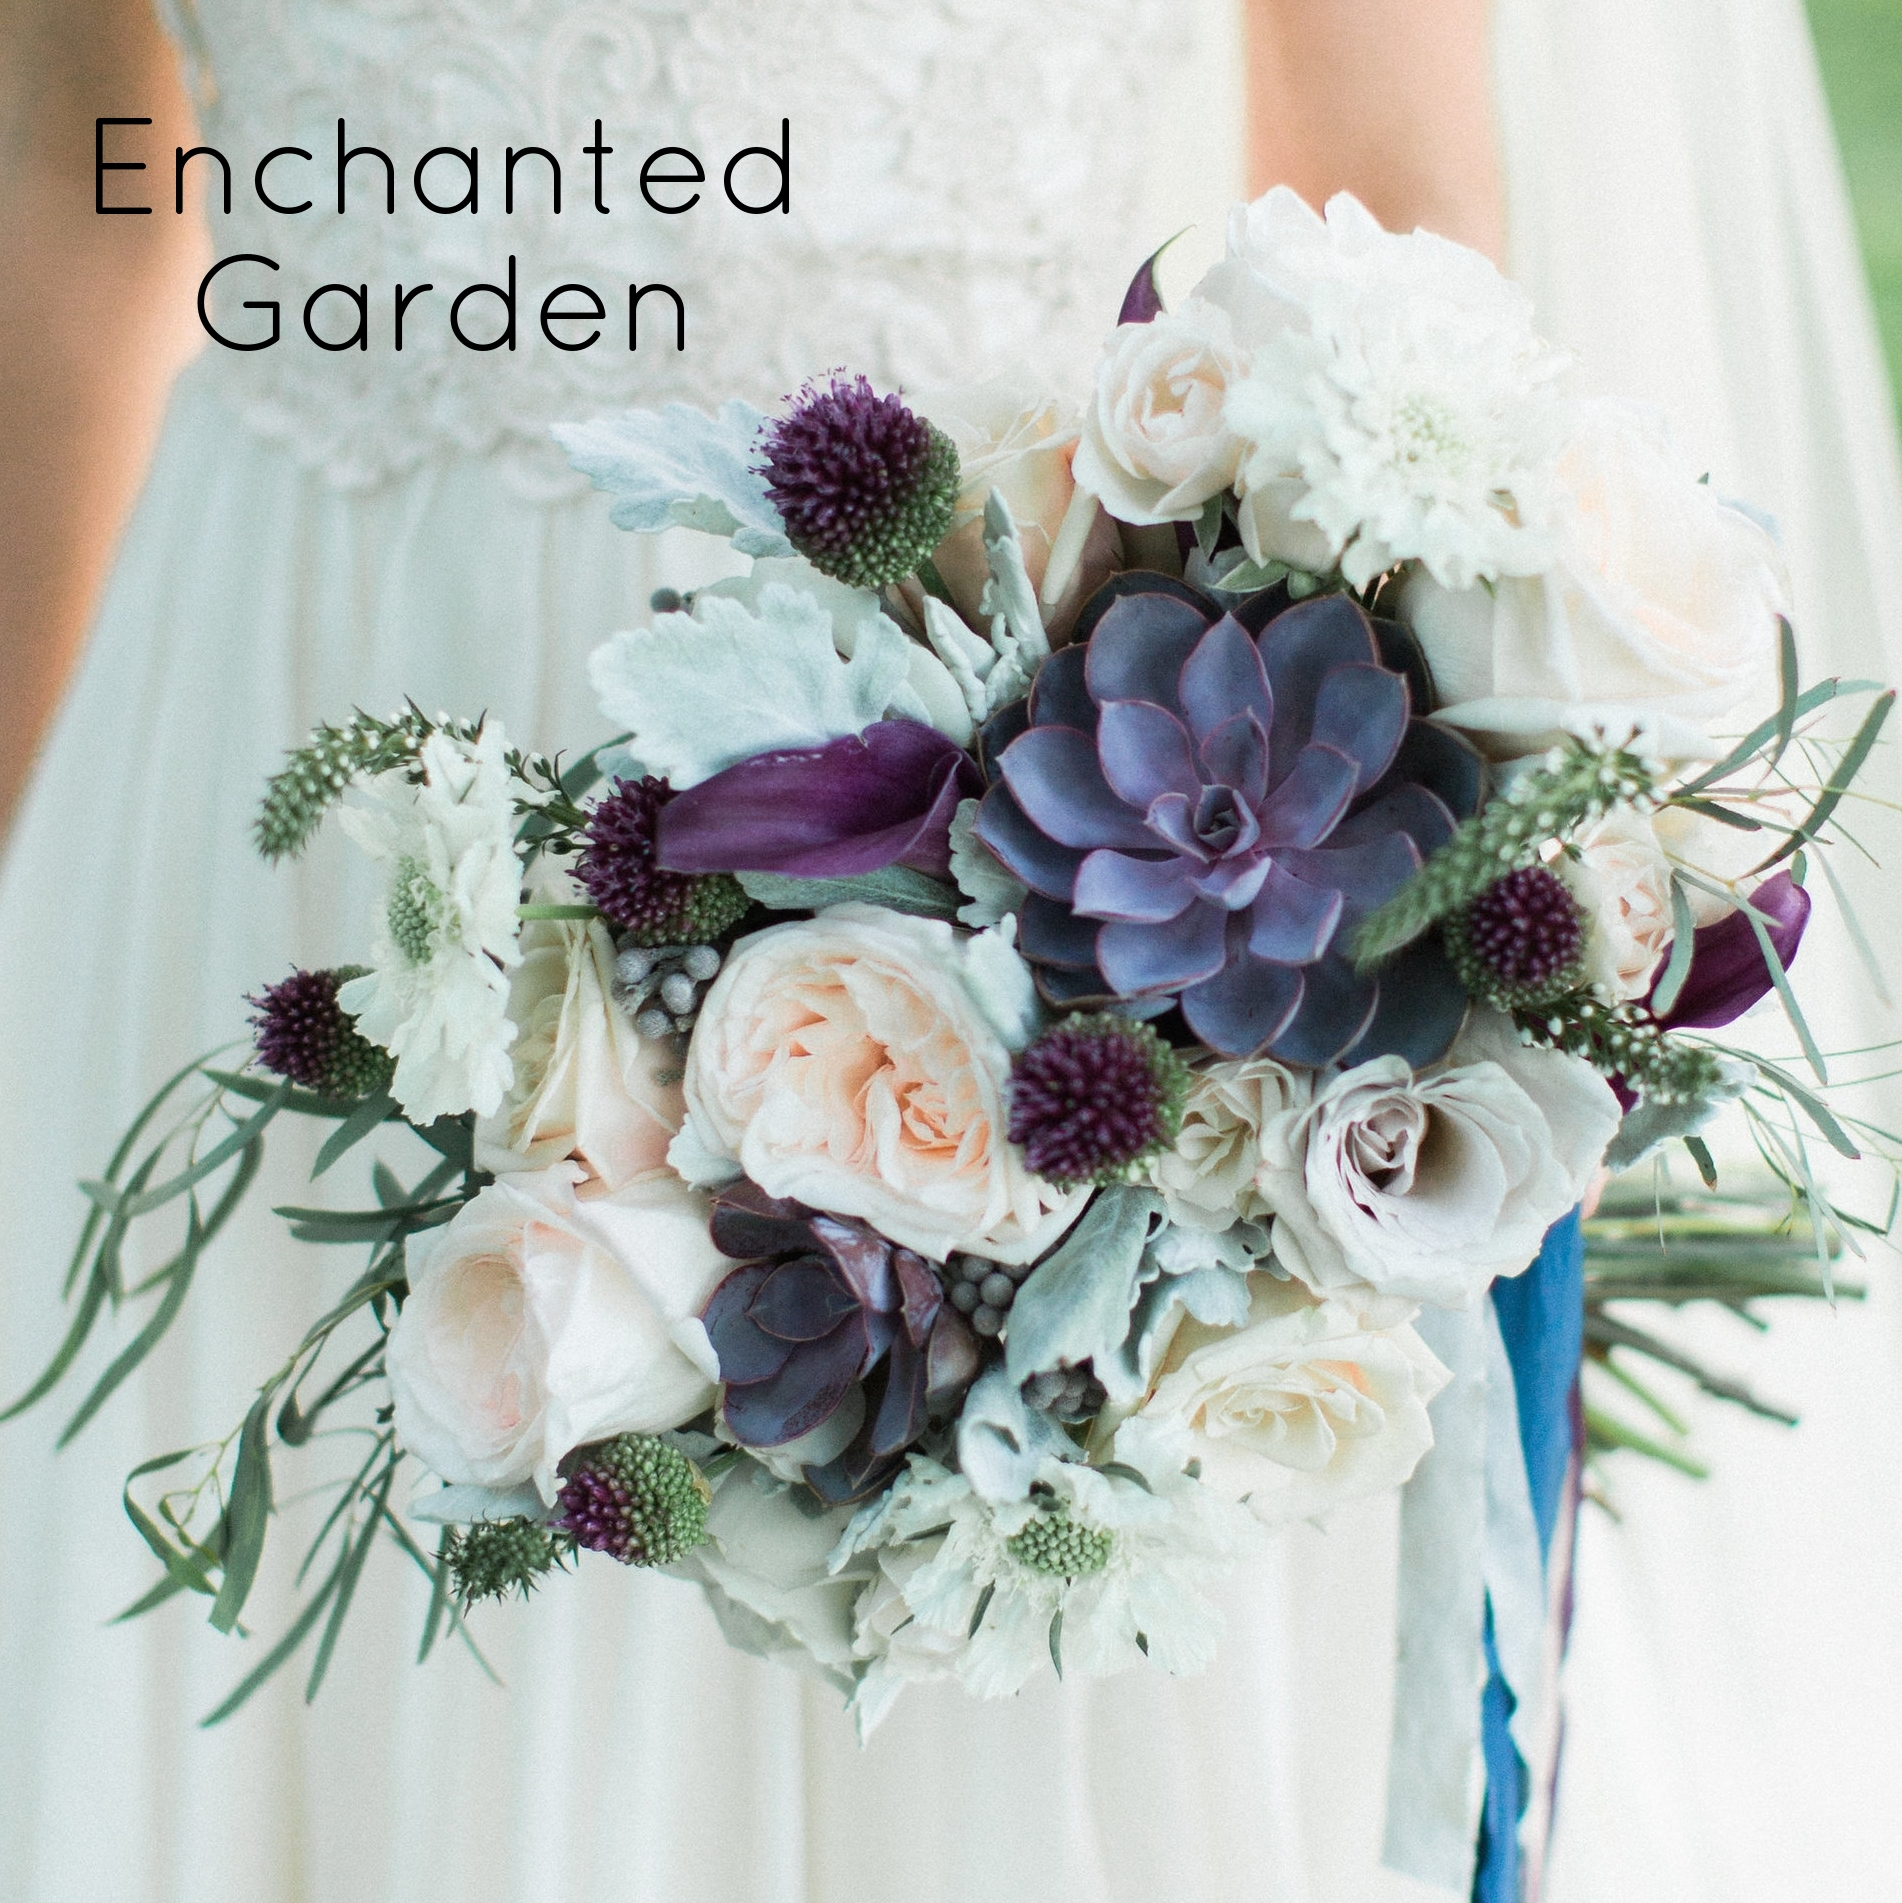 enchanted_garden74.JPG